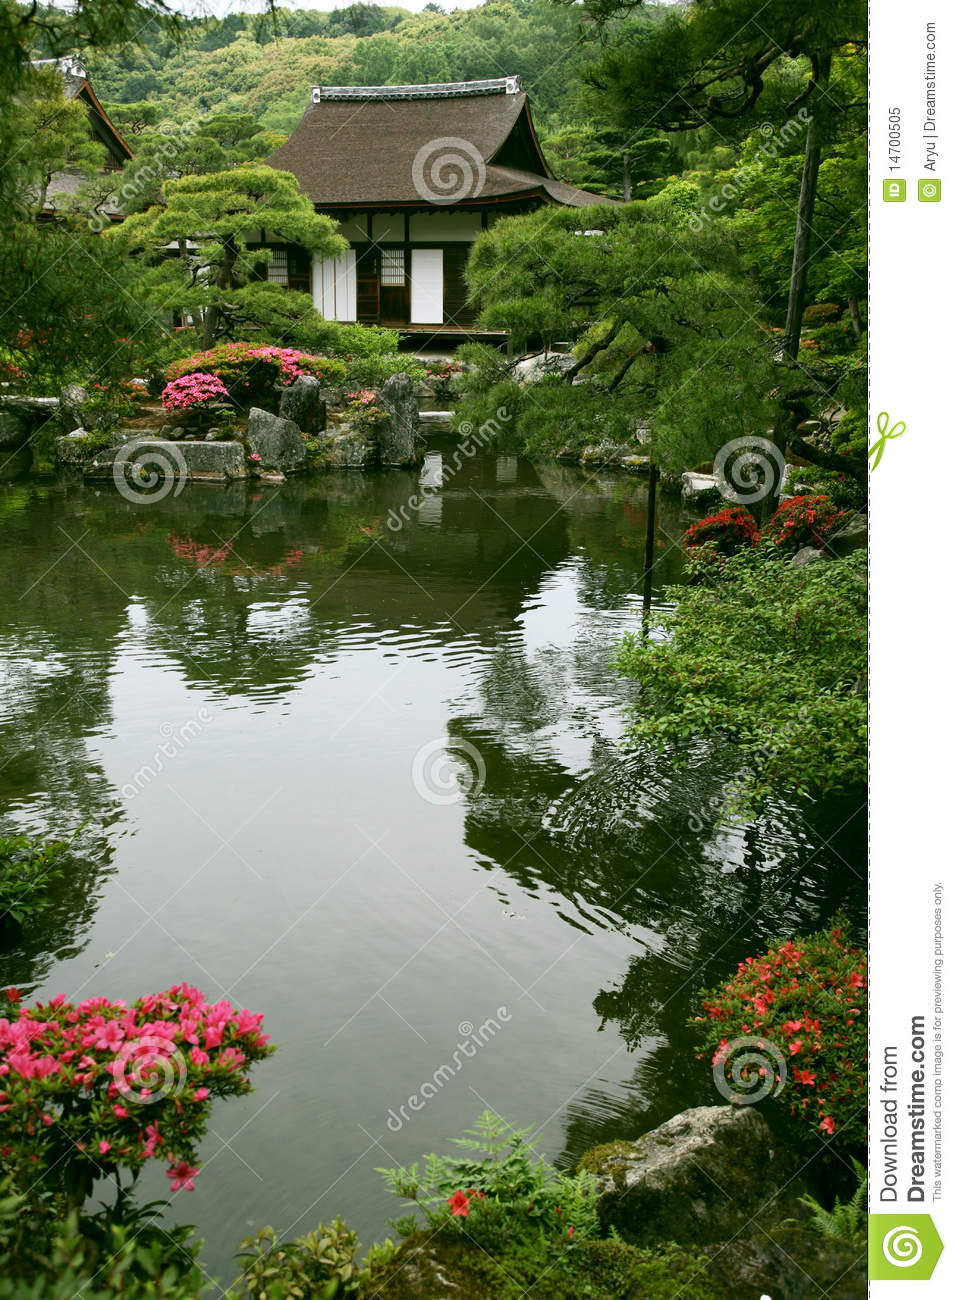 Japanese Landscape Architecture Japanese Landscape Garden Royalty Free Stock Photo Image 14700505